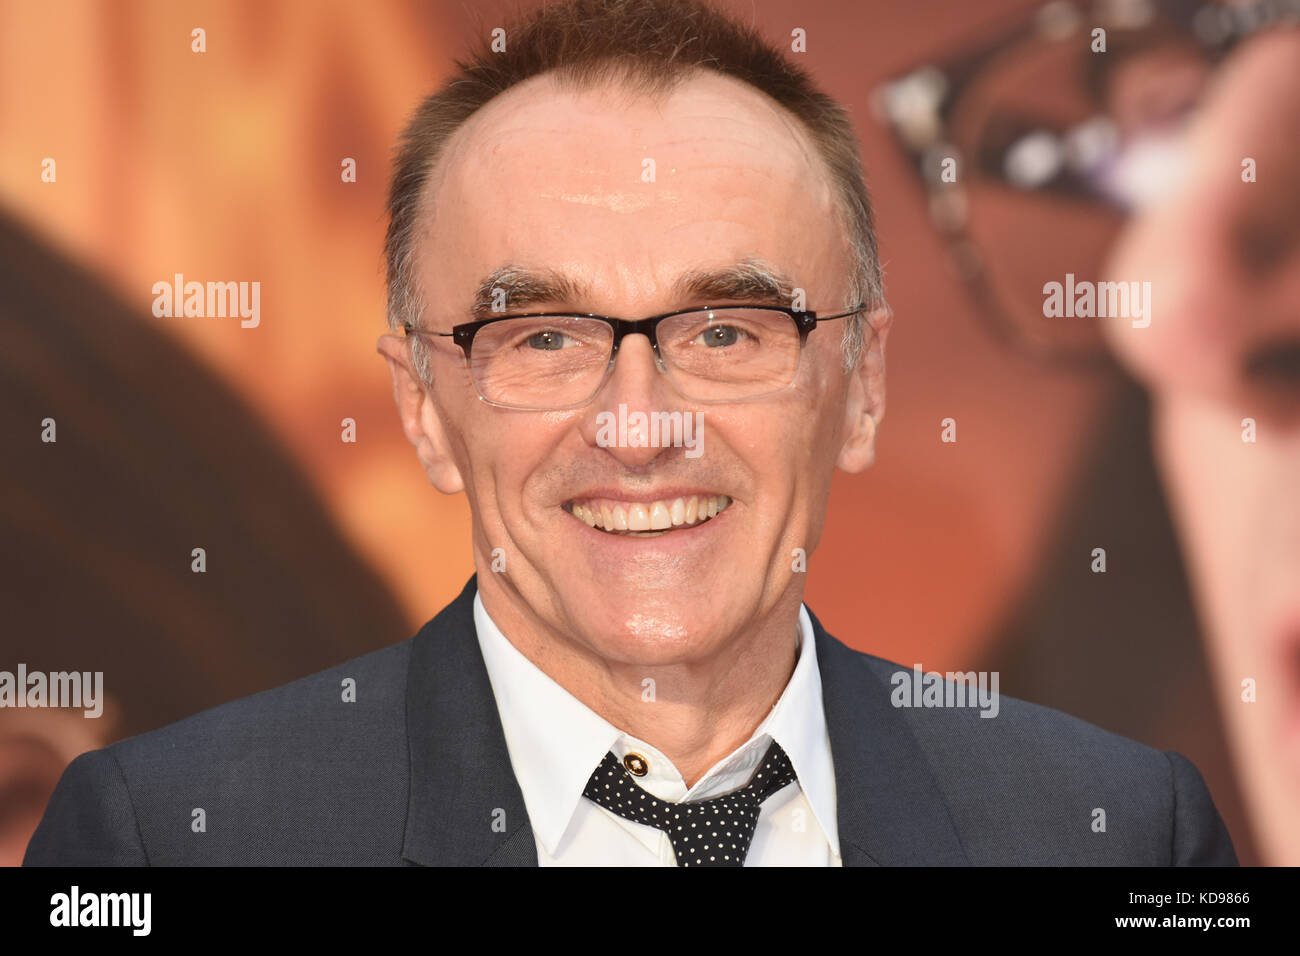 Danny Boyle'Battle of the Sexes' - European Premiere,BFI London Film Festival,Odeon Leicester Square,London.UK - Stock Image